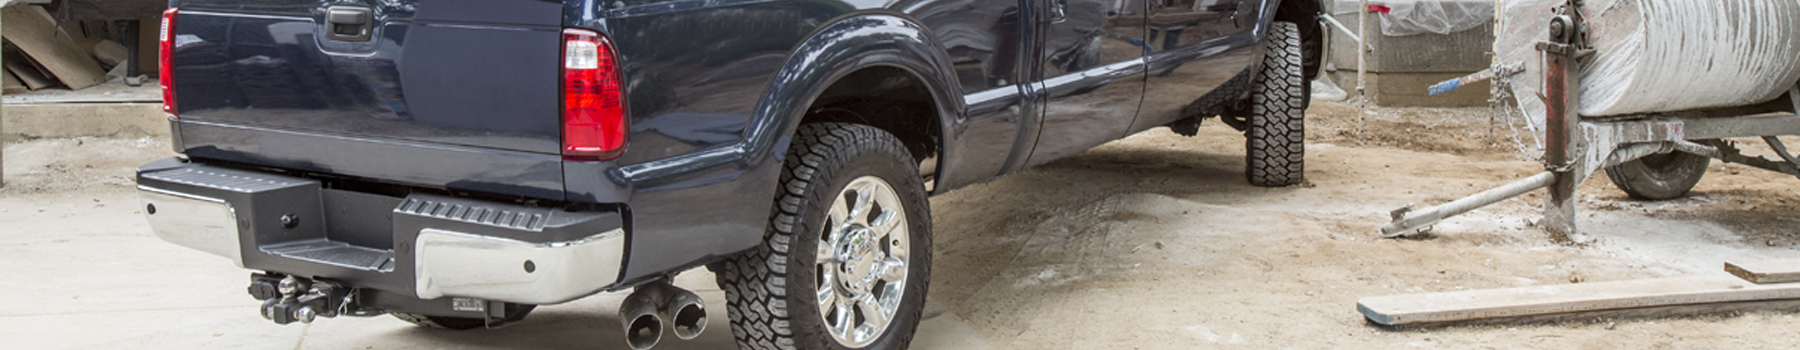 Light truck commercial tires toyo tires canada light truck commercial tires mozeypictures Images